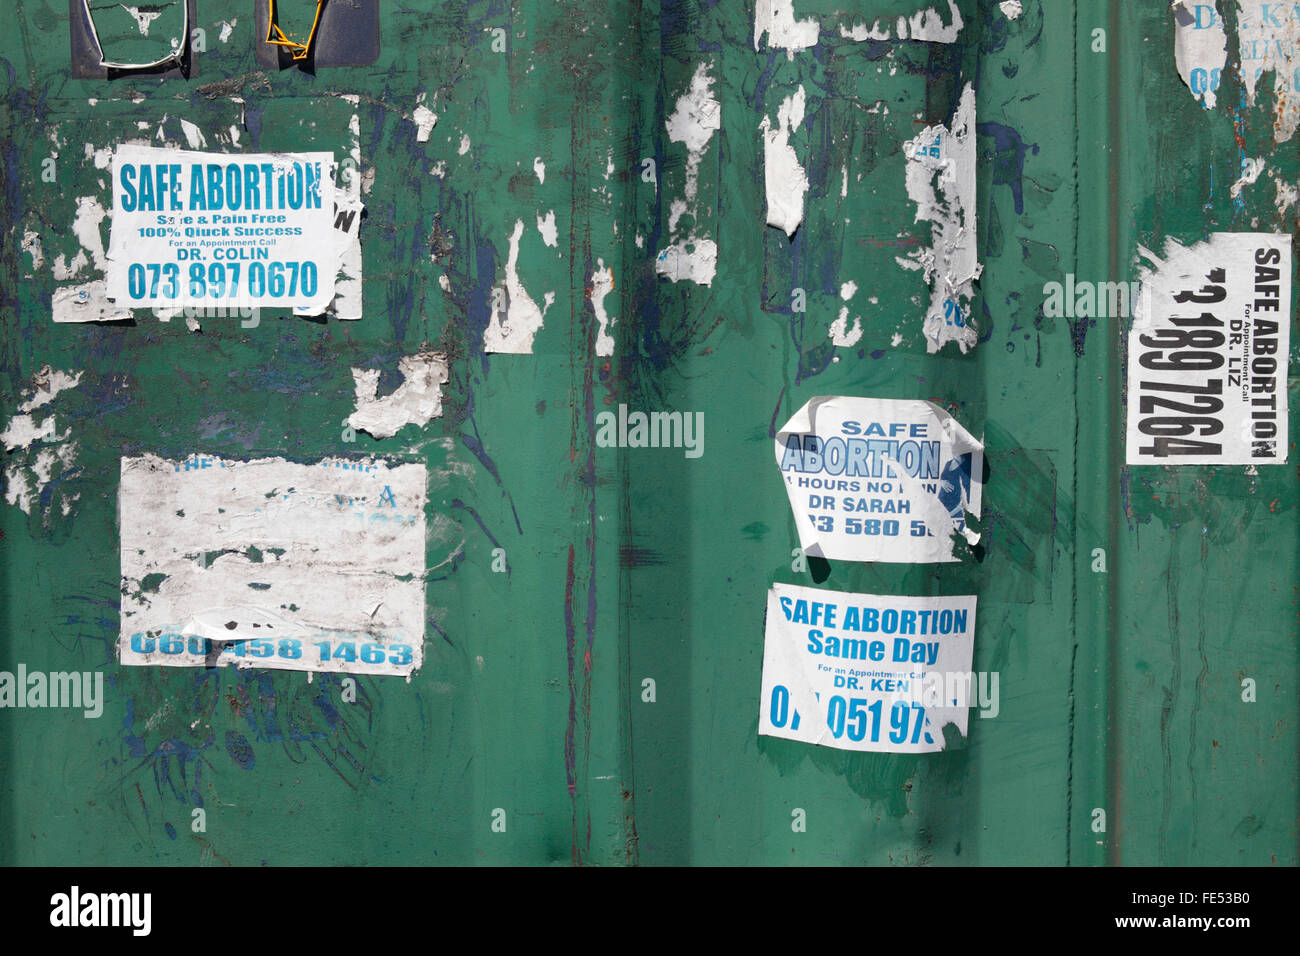 Abortion Adverts, Cape Town, South Africa - Stock Image